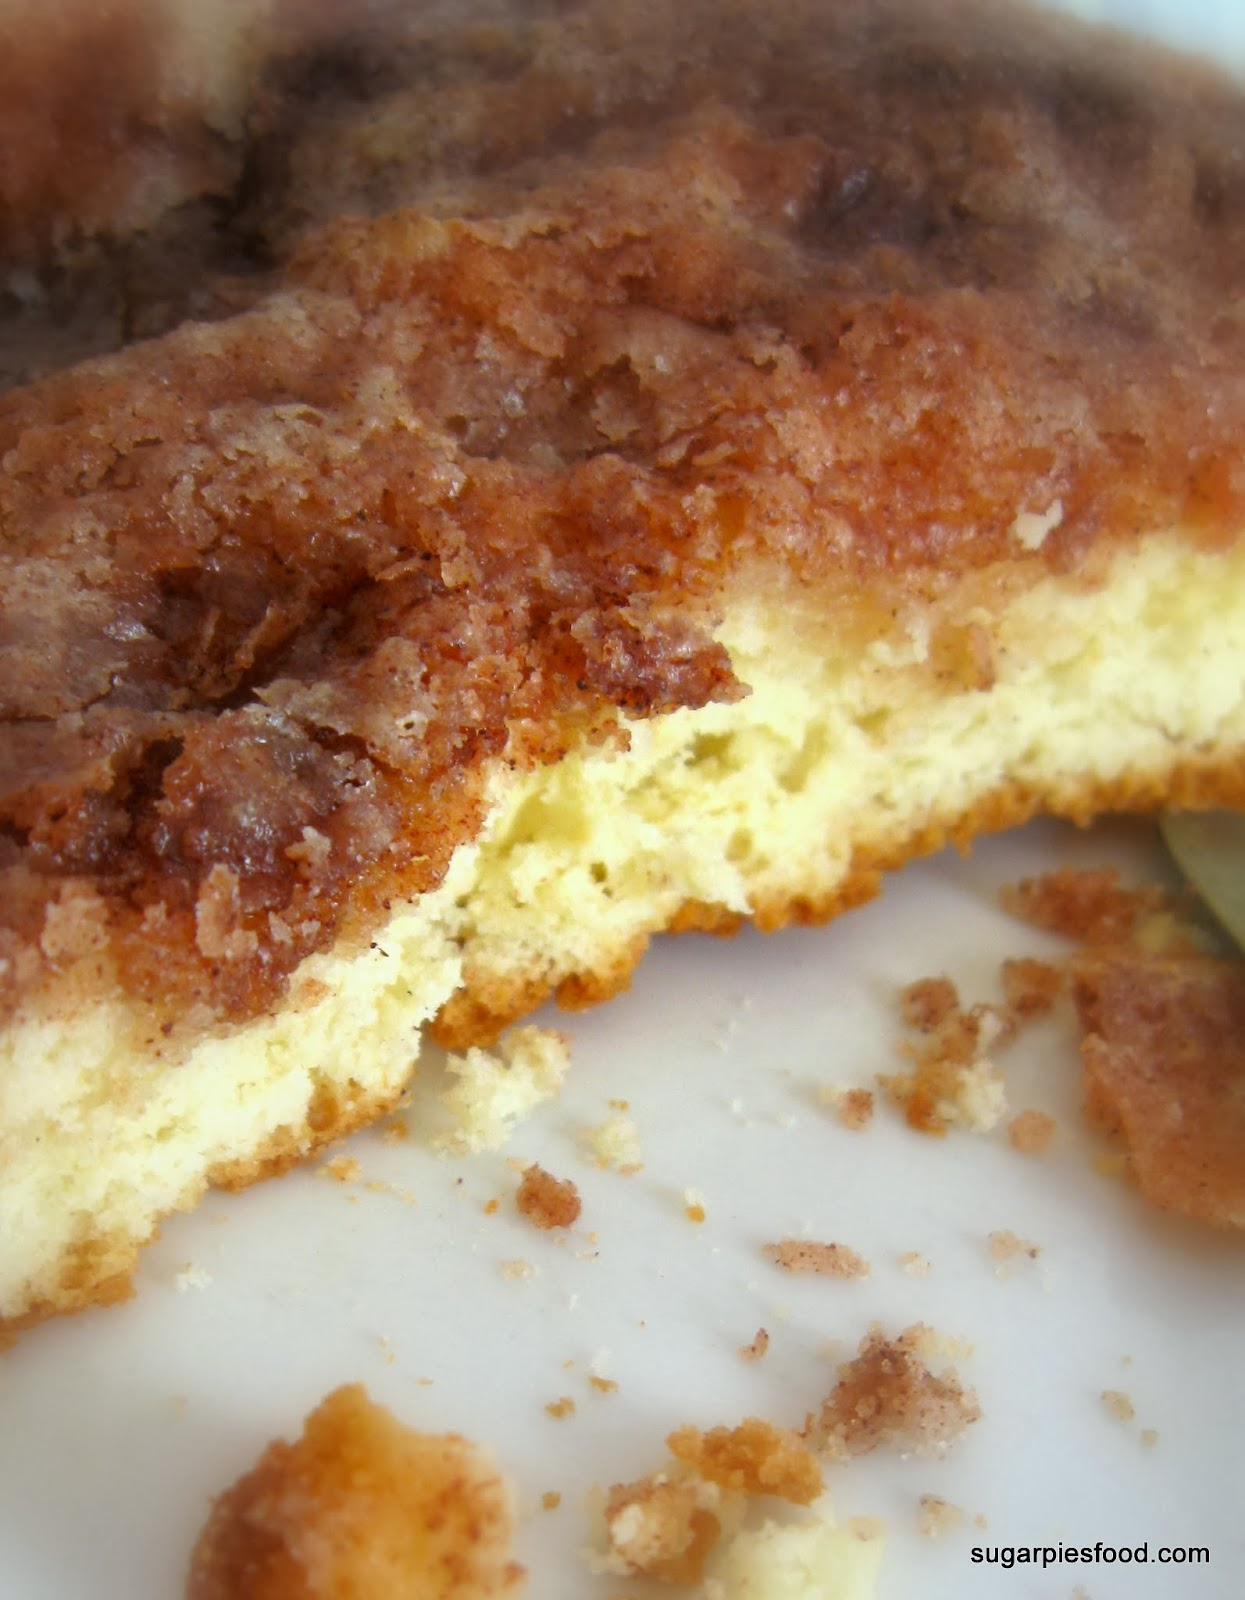 Retro Cinnamon Sugar Coffee Cake - Sugar Pies